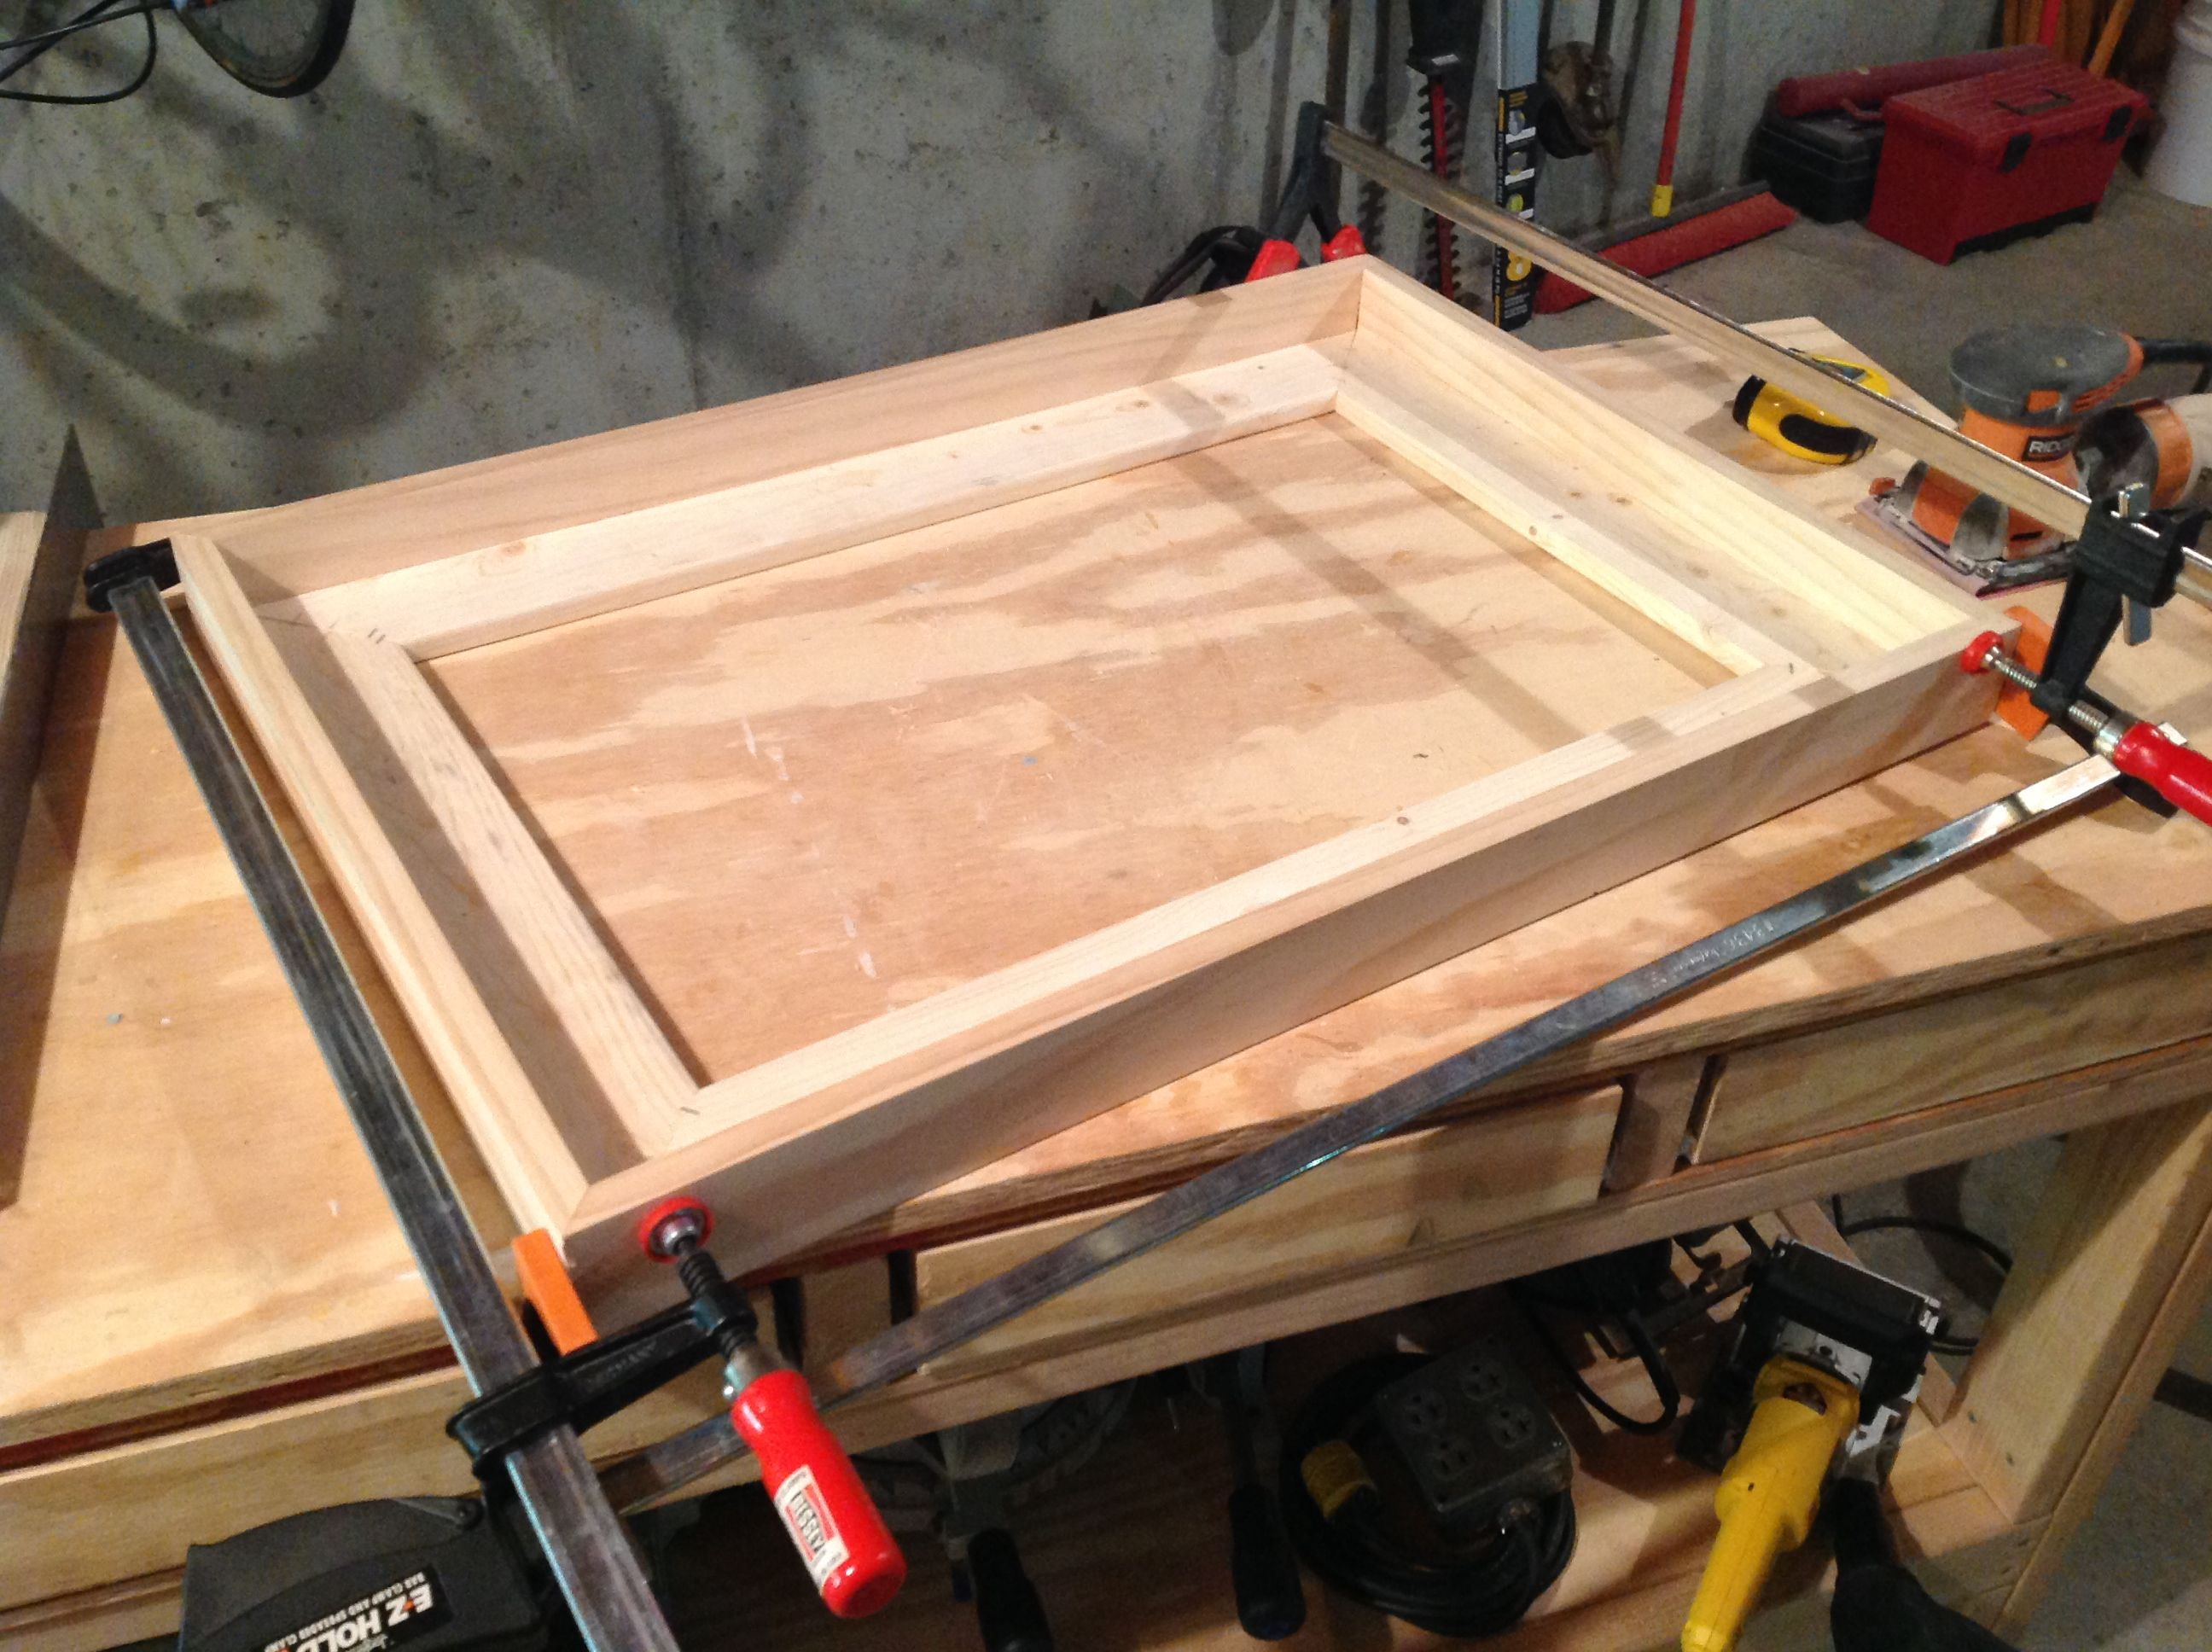 Build your own diy float frame a lesson learned diy